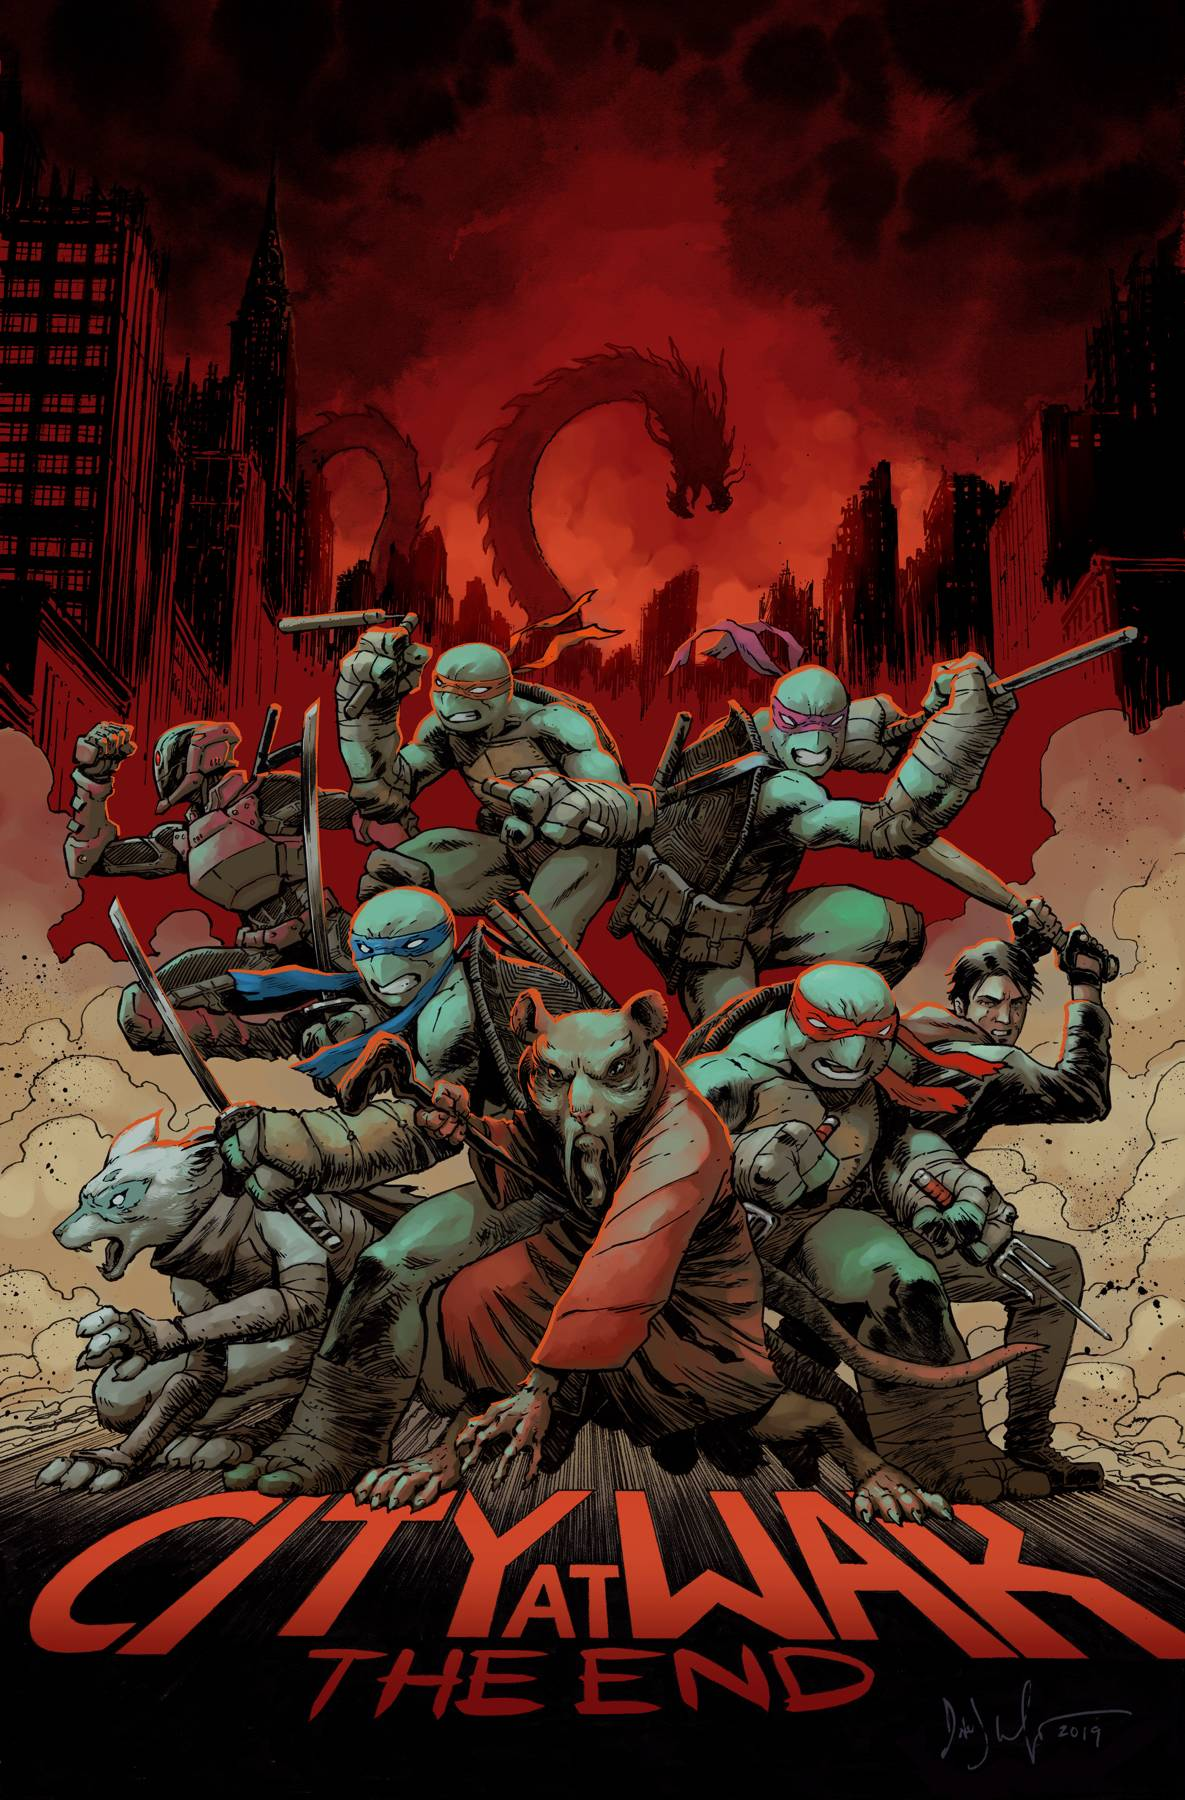 TMNT ONGOING #100 DEATH OF MAJOR CHARACTER